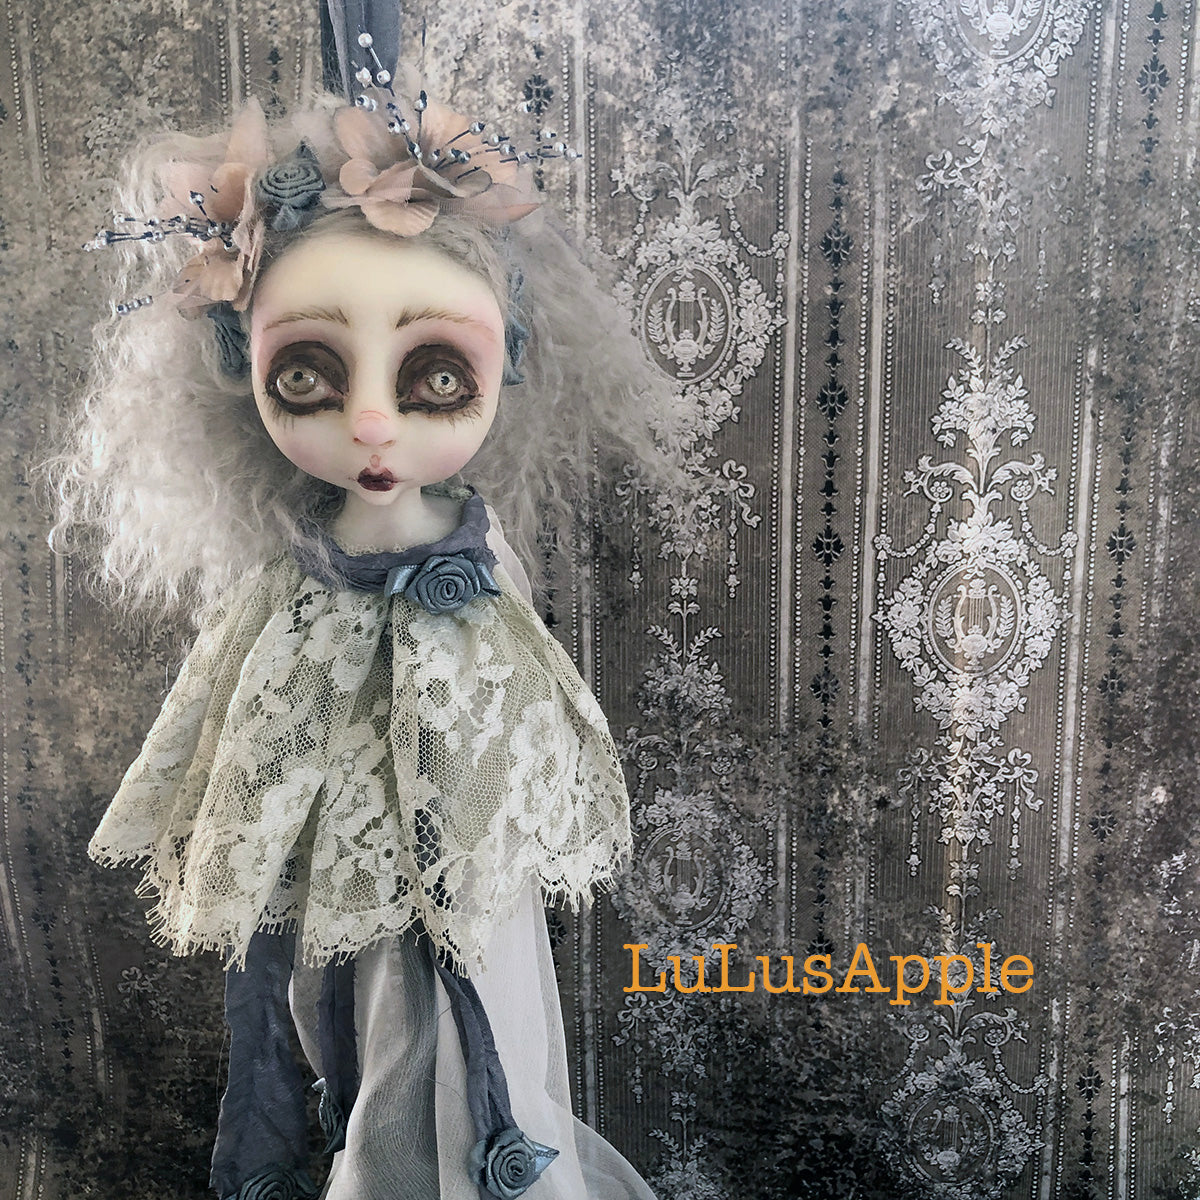 Mia the Decapitated Head Ghostly ornament OOAK LuLusApple Art Doll